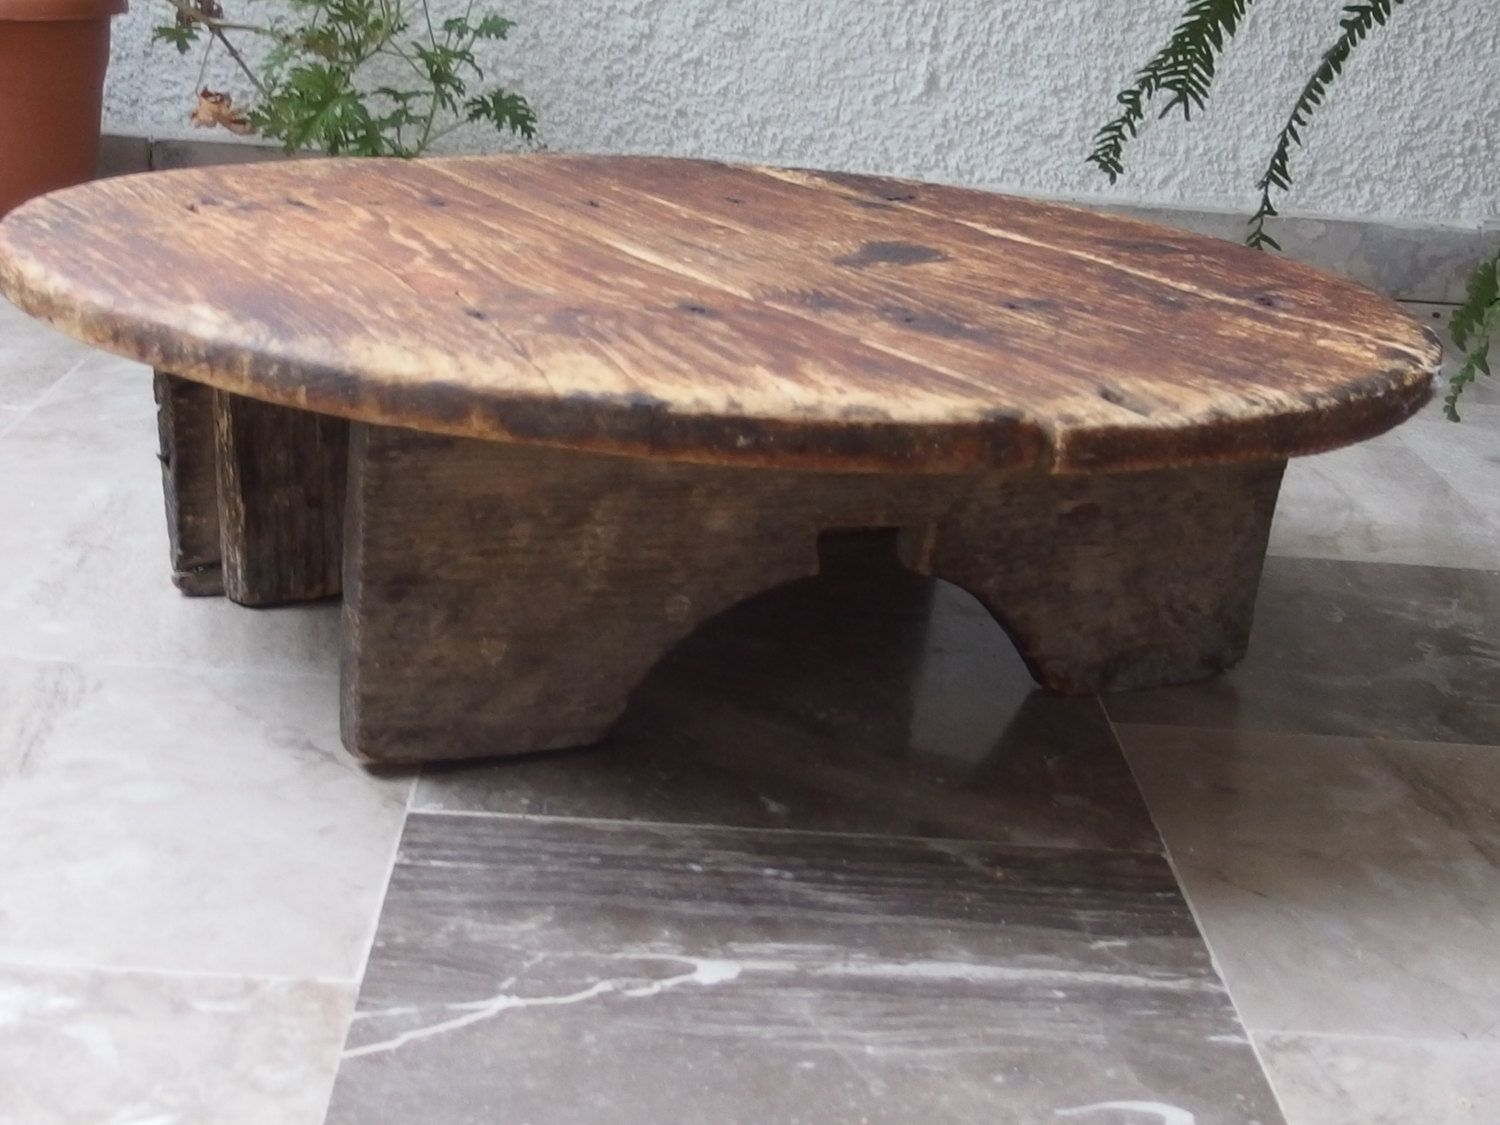 Primitive Wooden Round Table, Farm Table, Low Wooden Table, Antique Wood  Table,